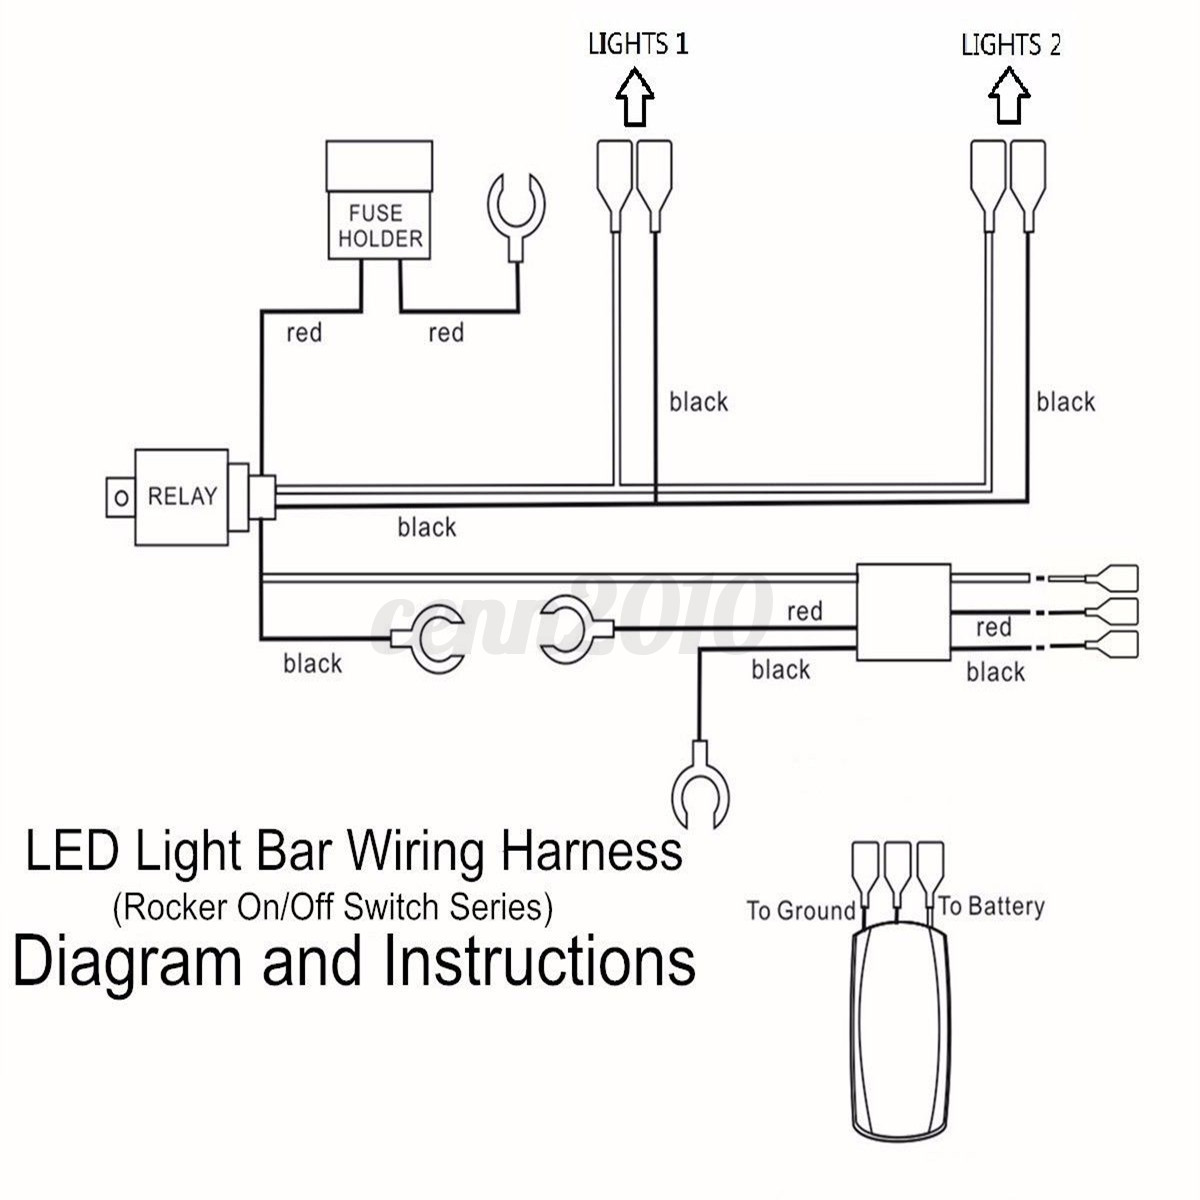 Cree Light Bar Wiring Diagram Stedi Clarion Nx409 Color Led Harness Ewiring On Off Switch Rocker Diagrams Road